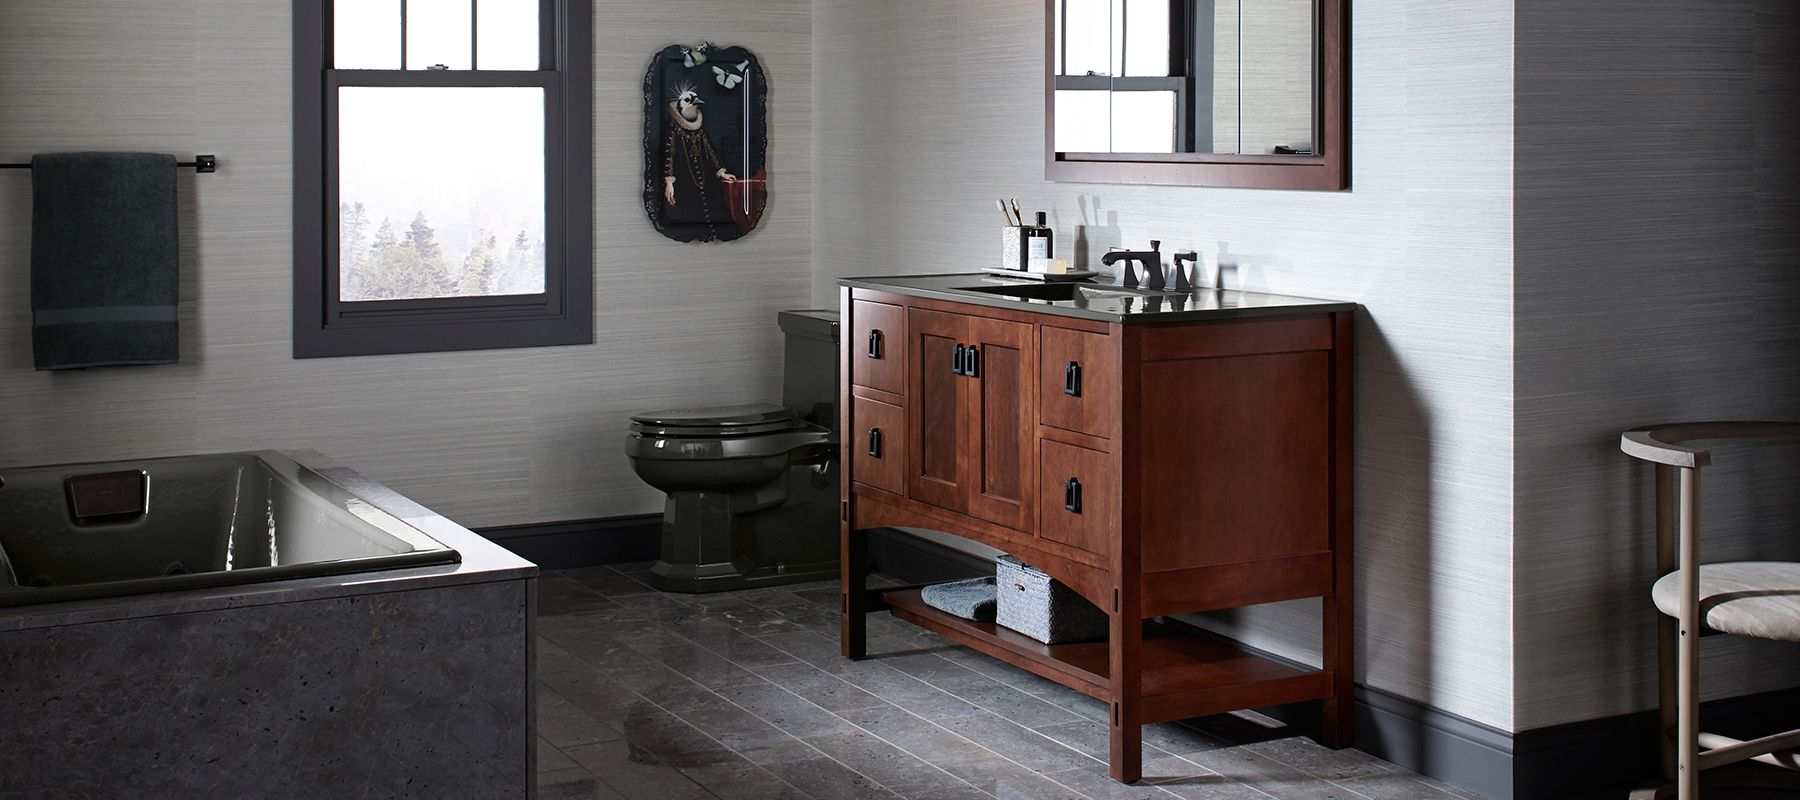 Bathroom Sinks Bathroom KOHLER - Who sells bathroom vanities